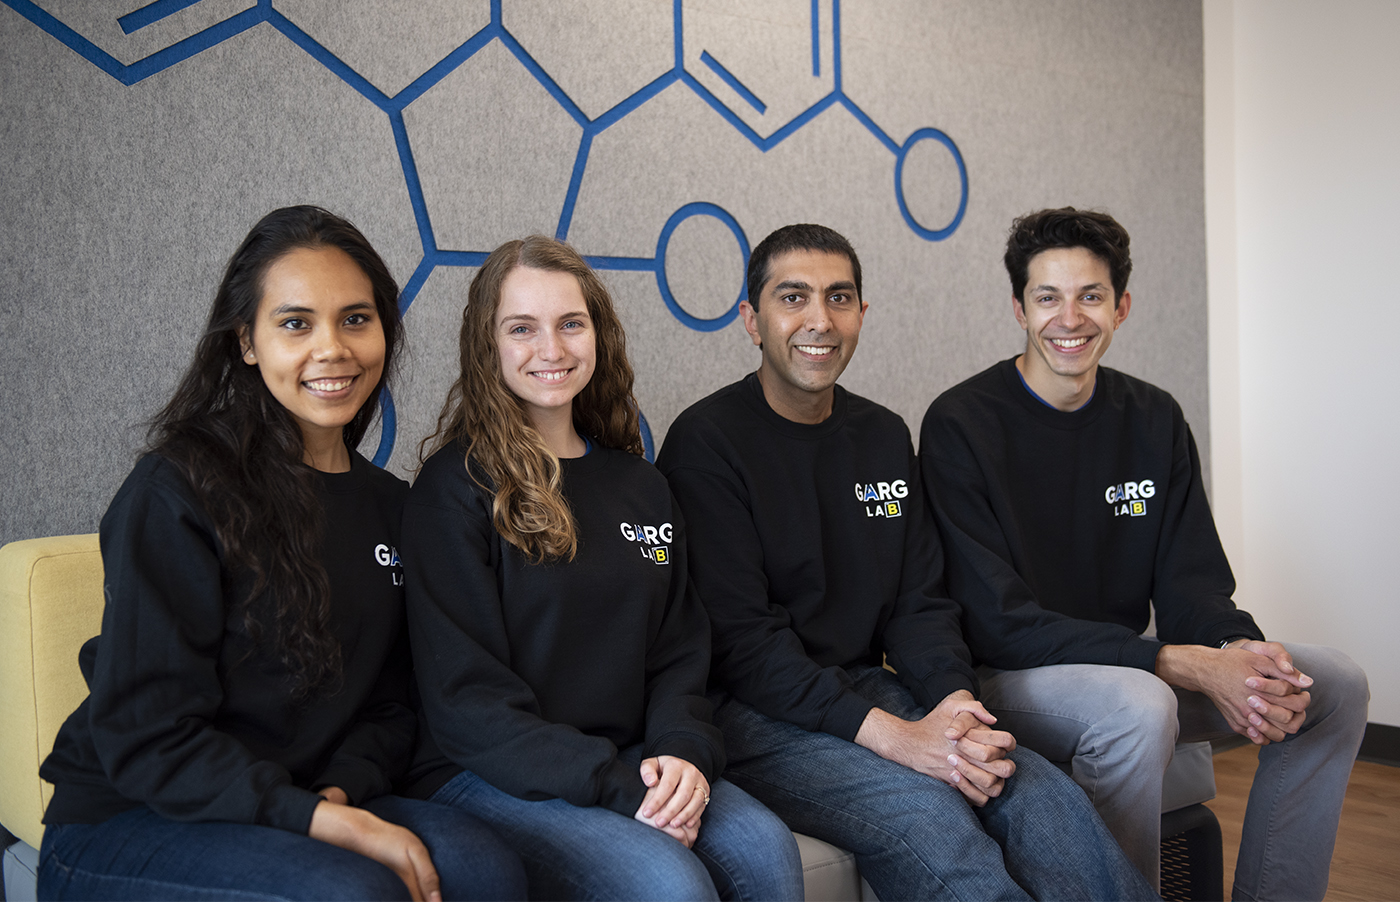 UCLA lab creates virtual reality app to help students with organic chemistry - Daily Bruin